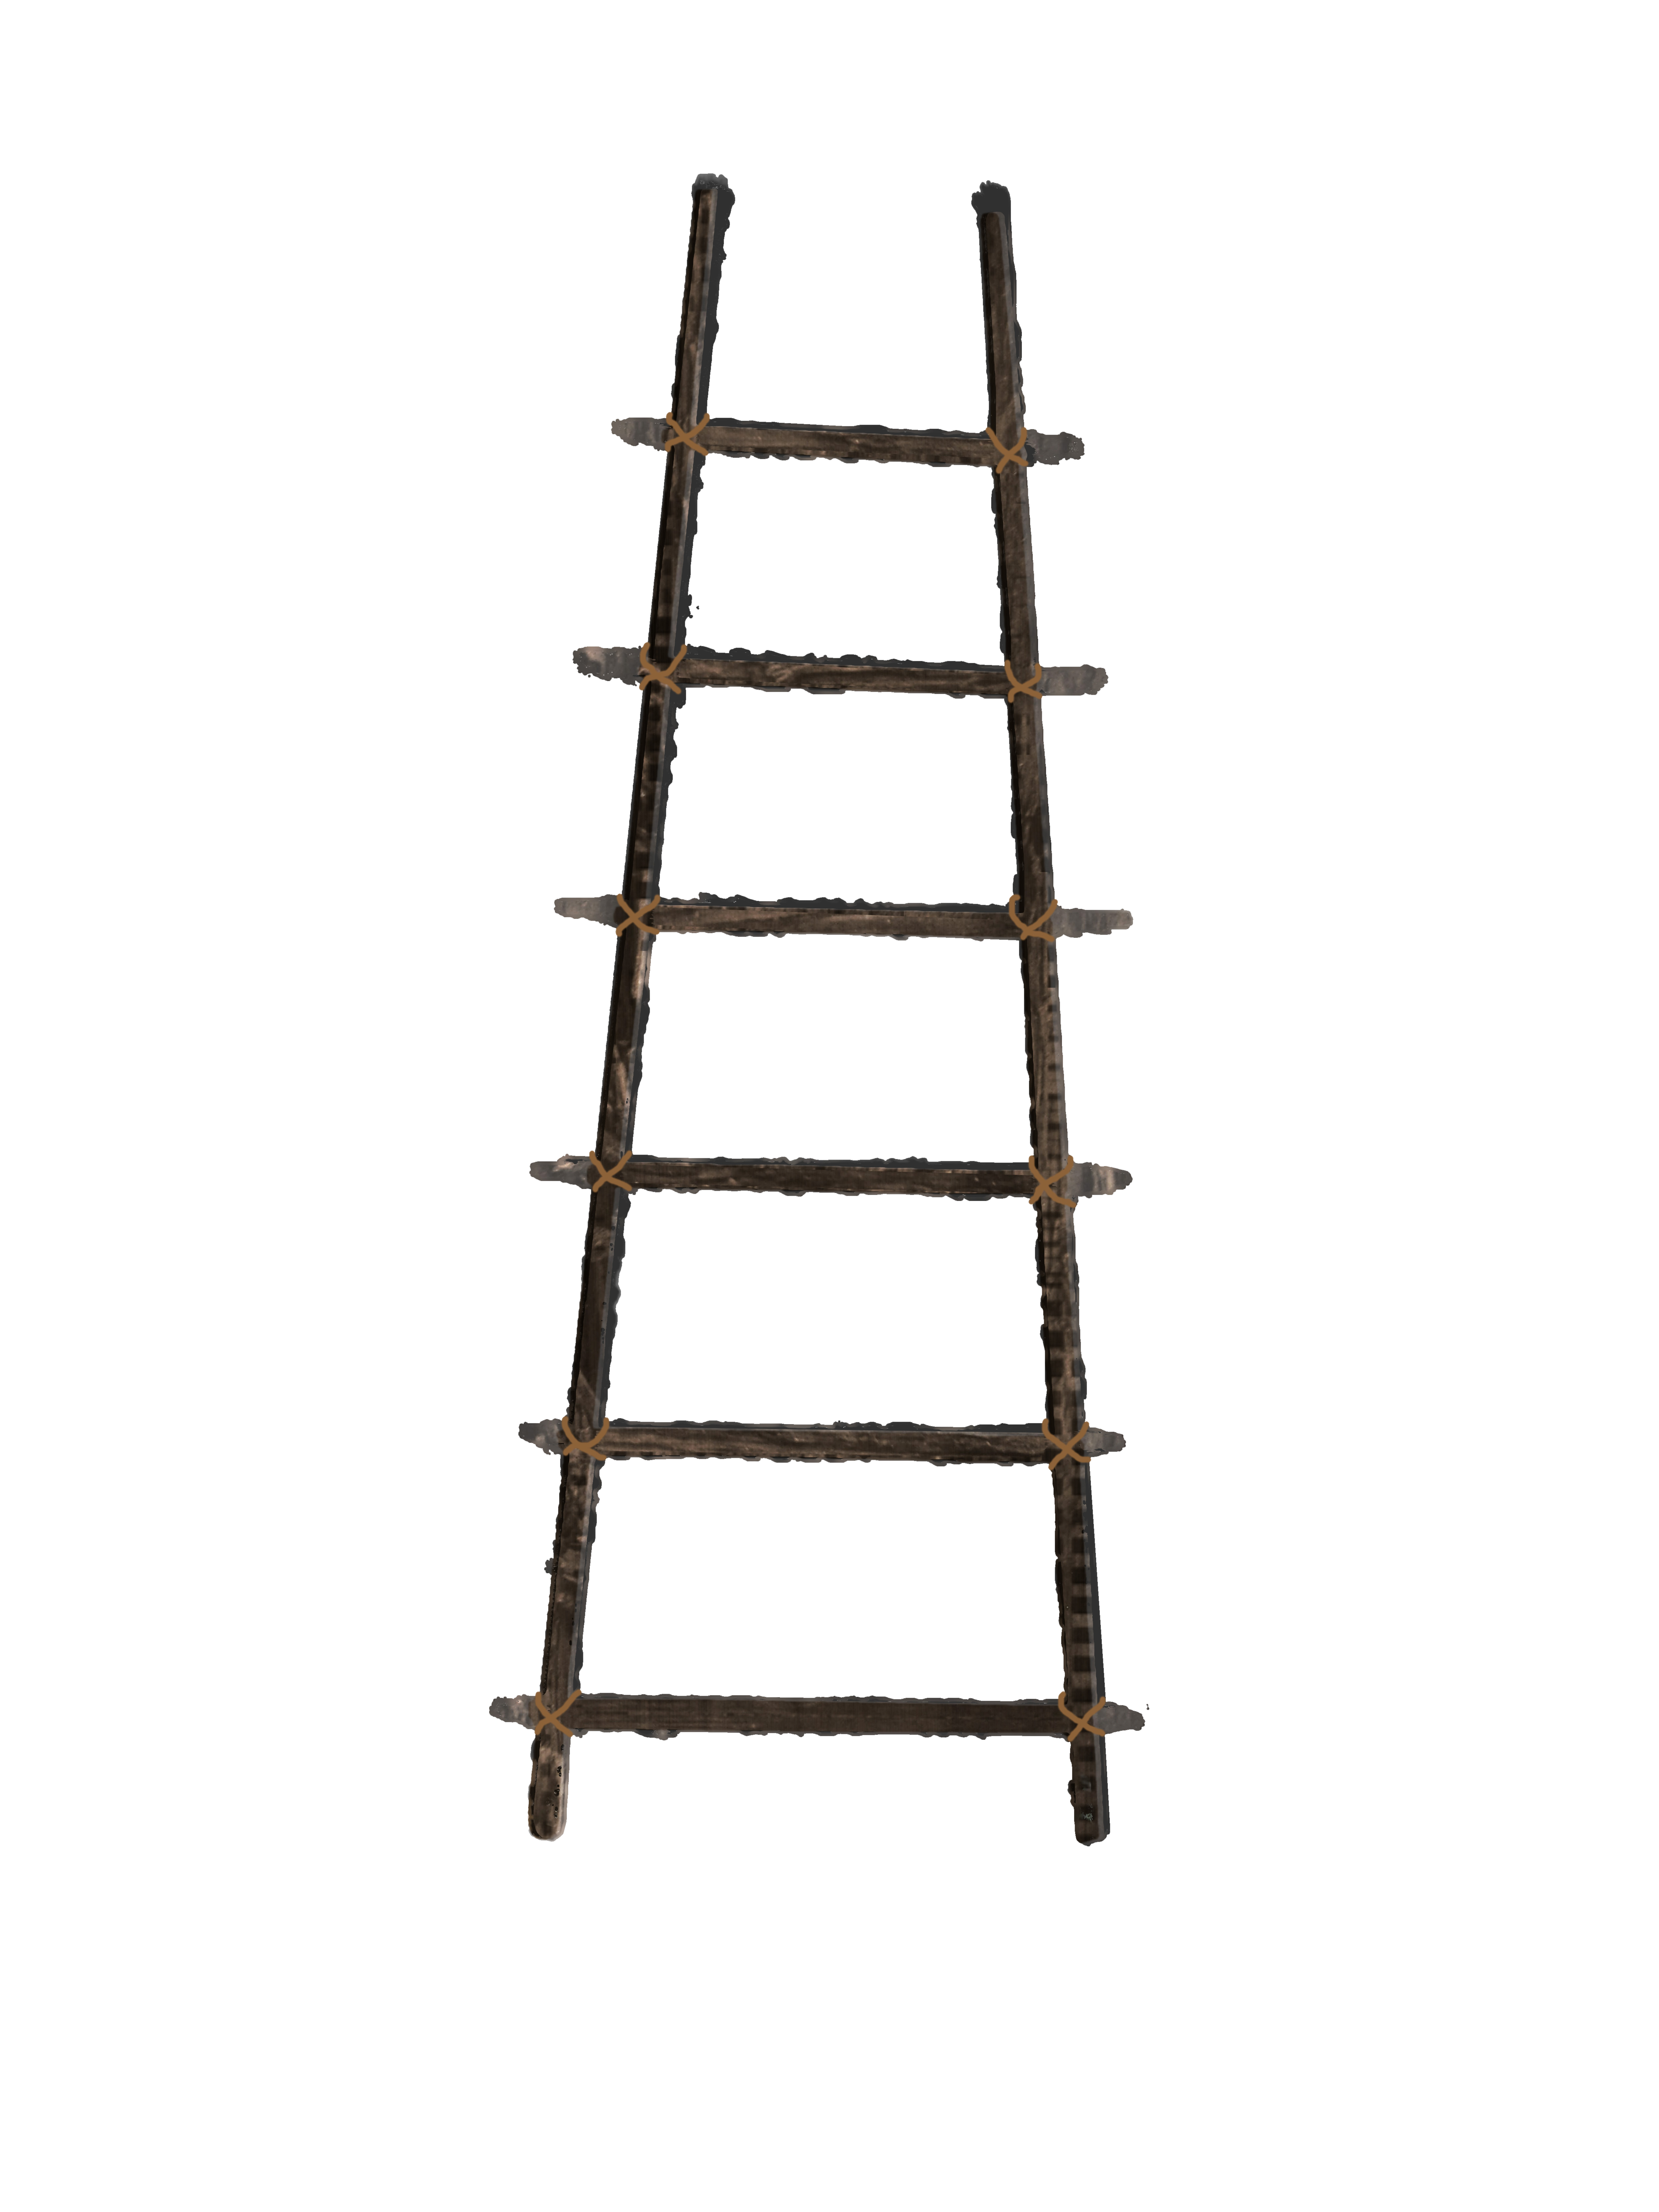 jpg freeuse stock Hd png transparent images. Rope ladder clipart